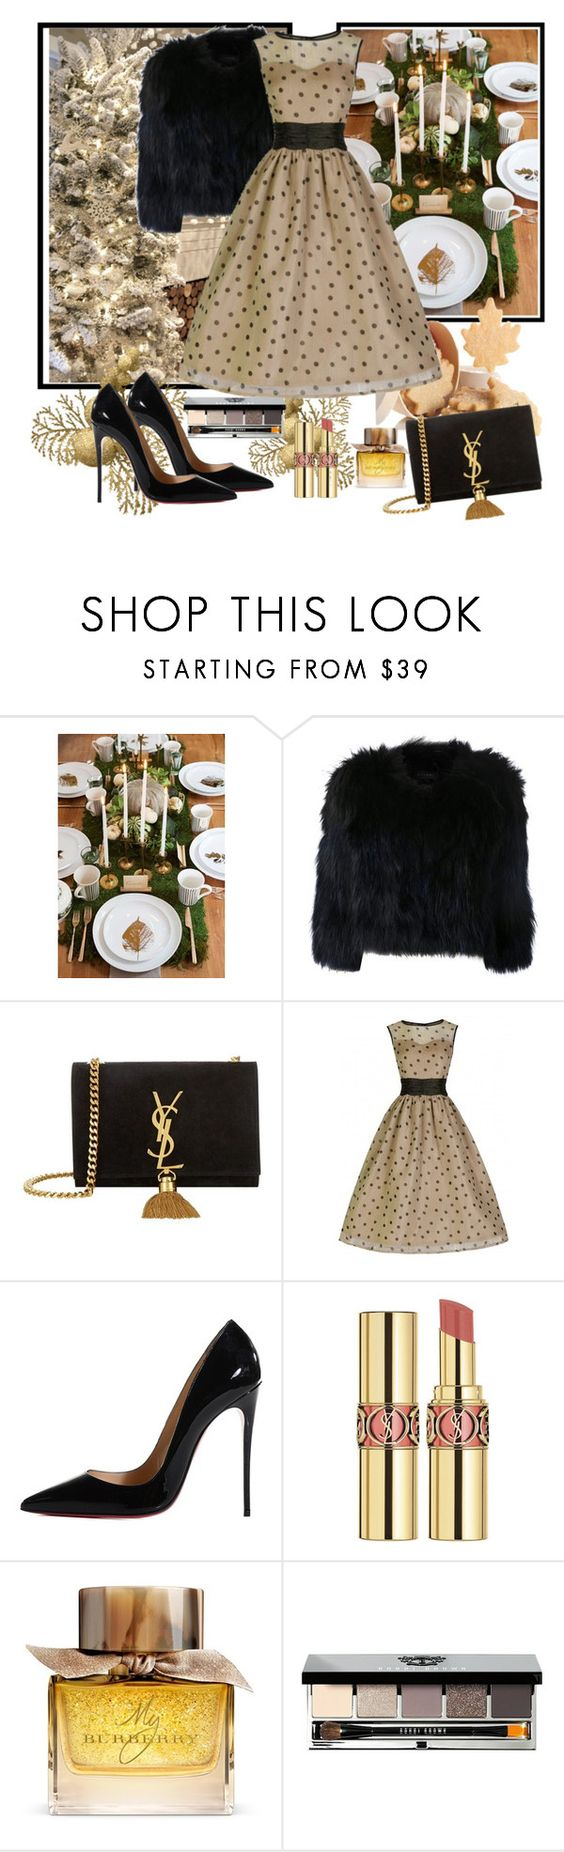 """Untitled #580"" by misaflowers ❤ liked on Polyvore featuring H Brand, Yves Saint Laurent, Christian Louboutin, Burberry and Bobbi Brown Cosmetics"